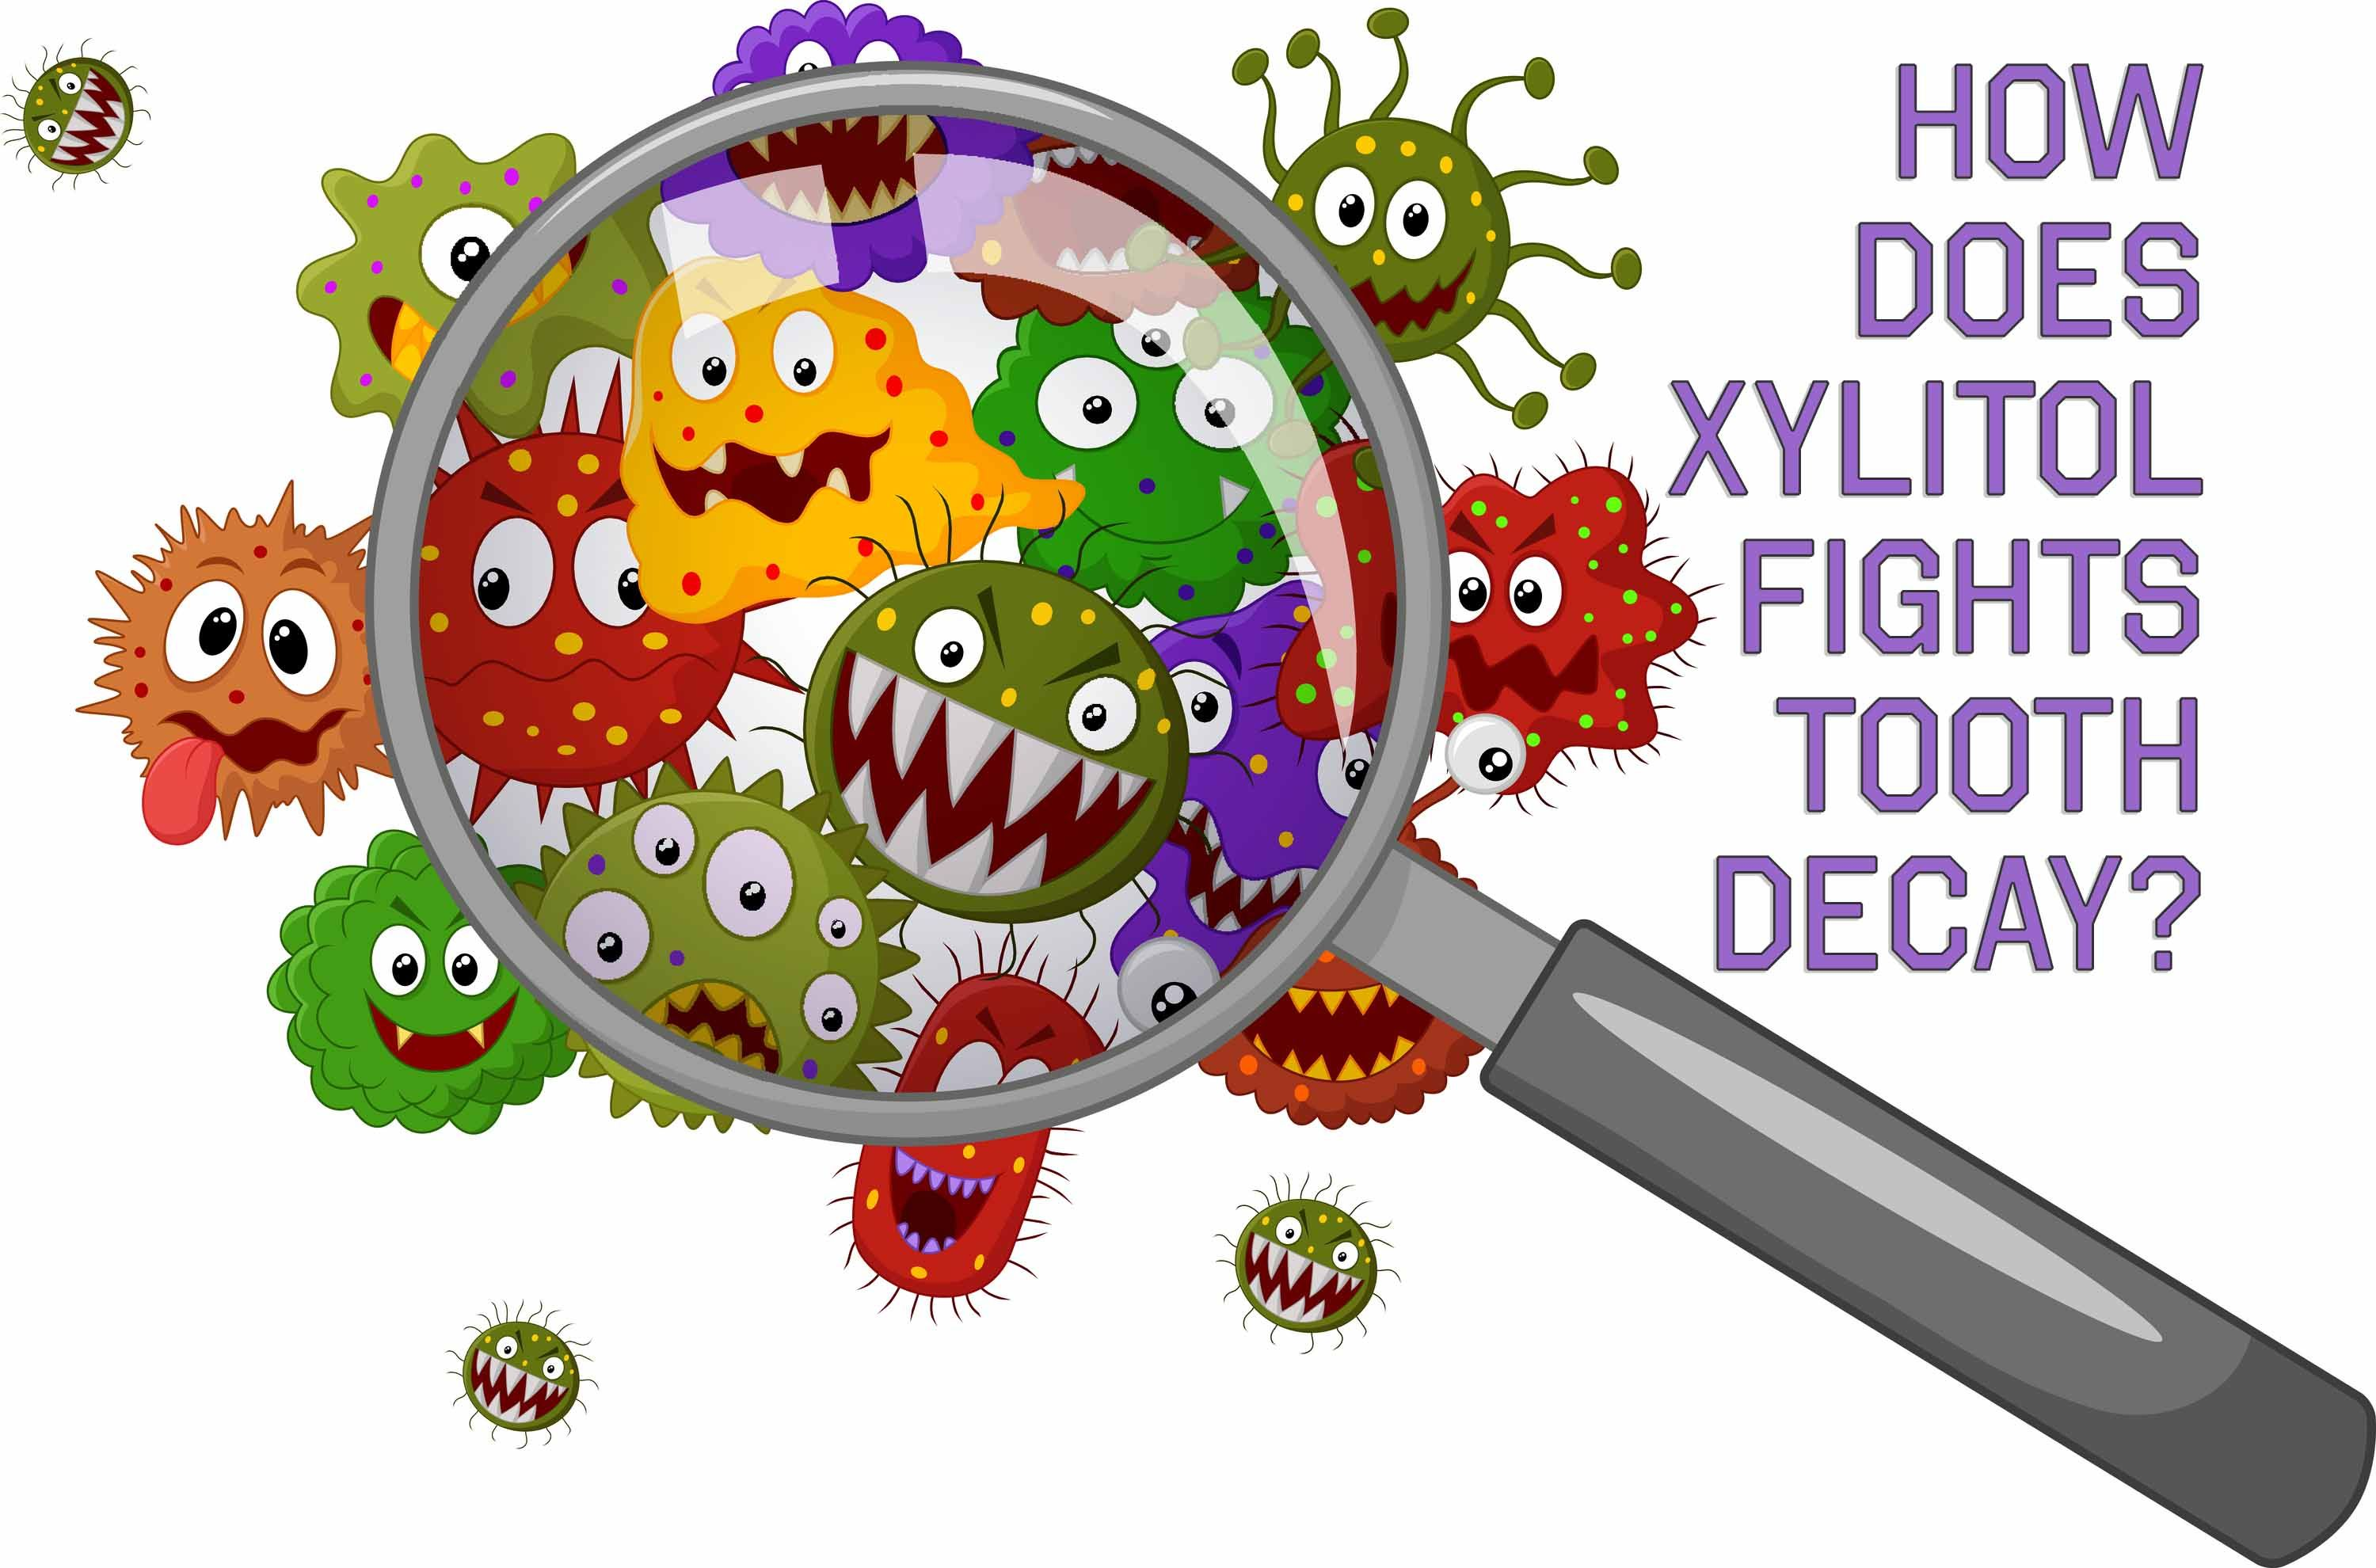 Find out how xylitol fights tooth decay! Don't have time to read now?  Save and read later!